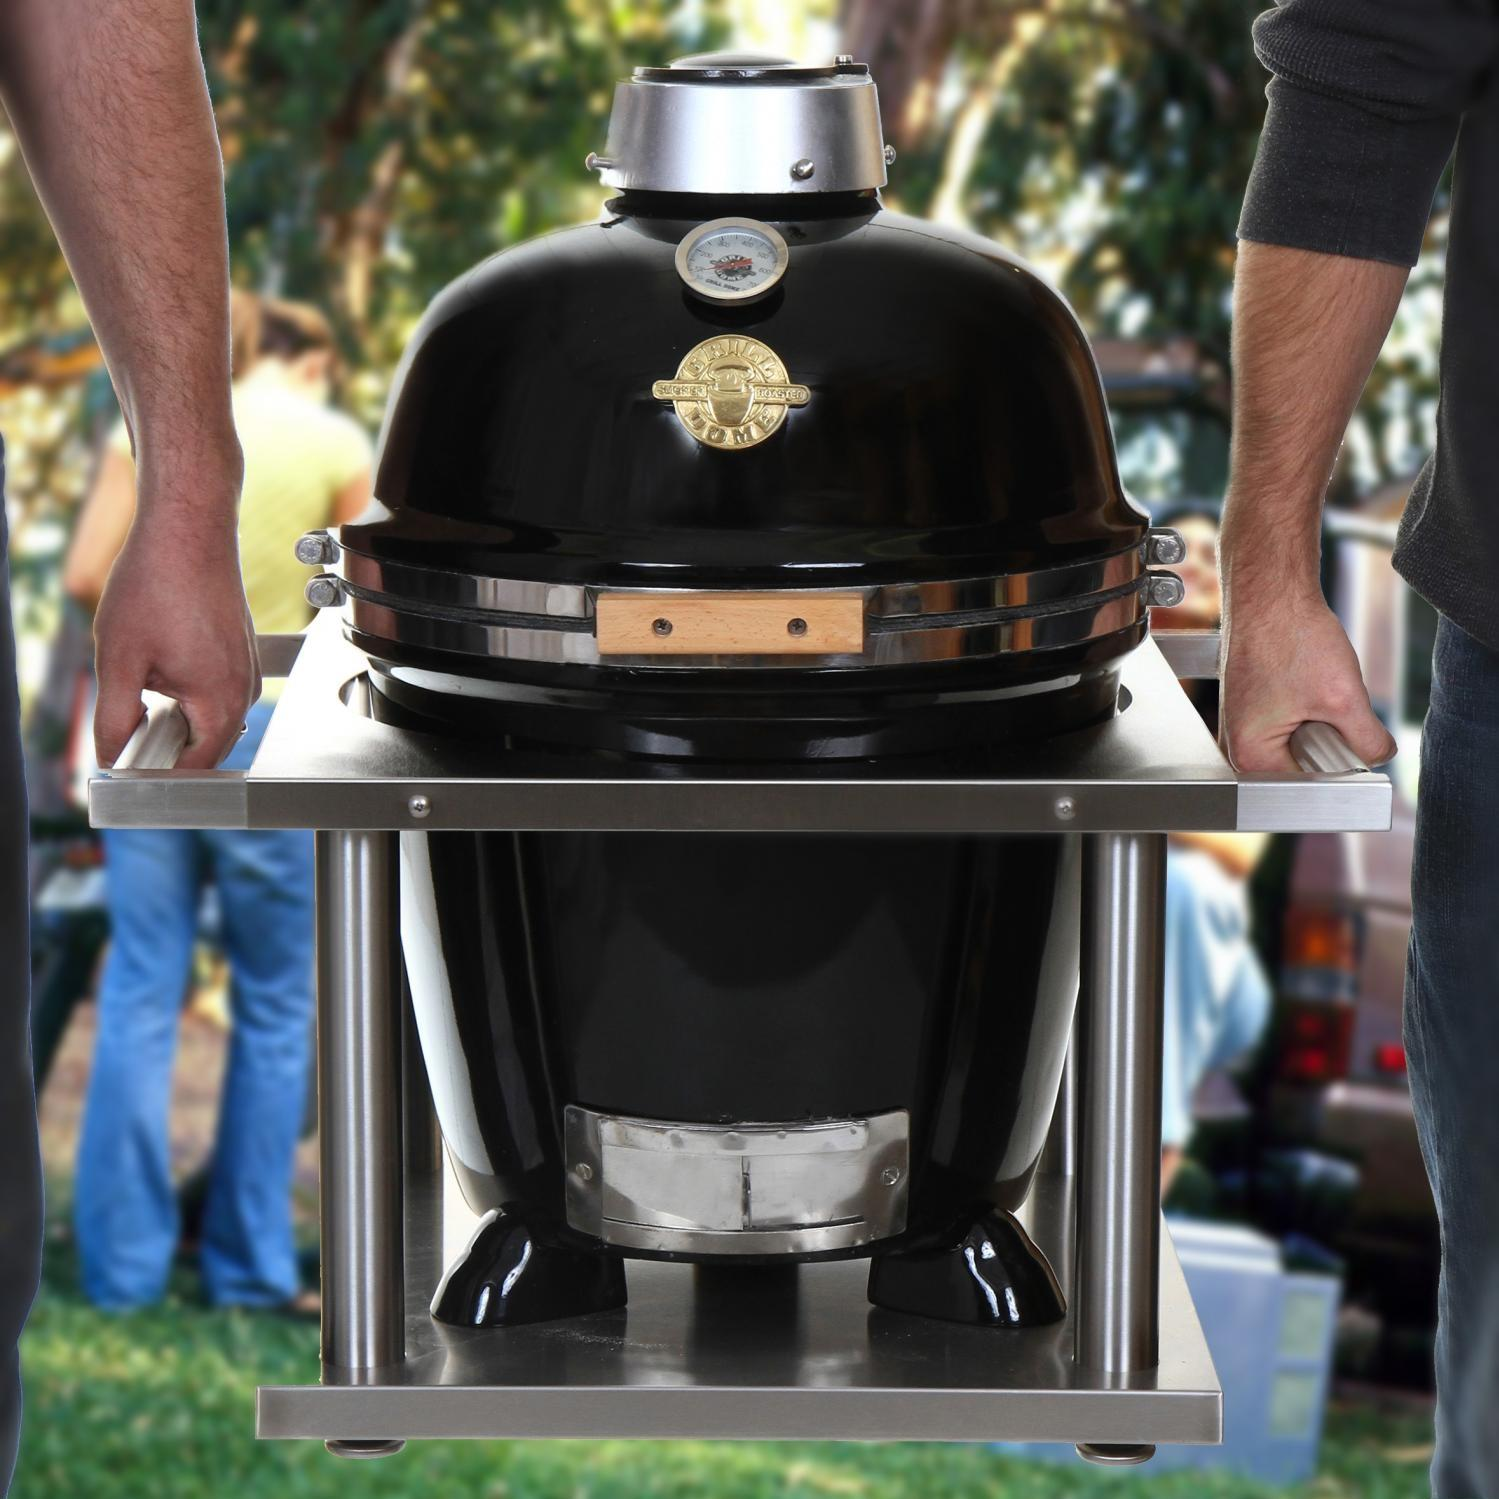 Grill Dome Infinity Series Small Black Kamado Grill With Kamagater, Discount ID GDS-BK KAMGTR-16